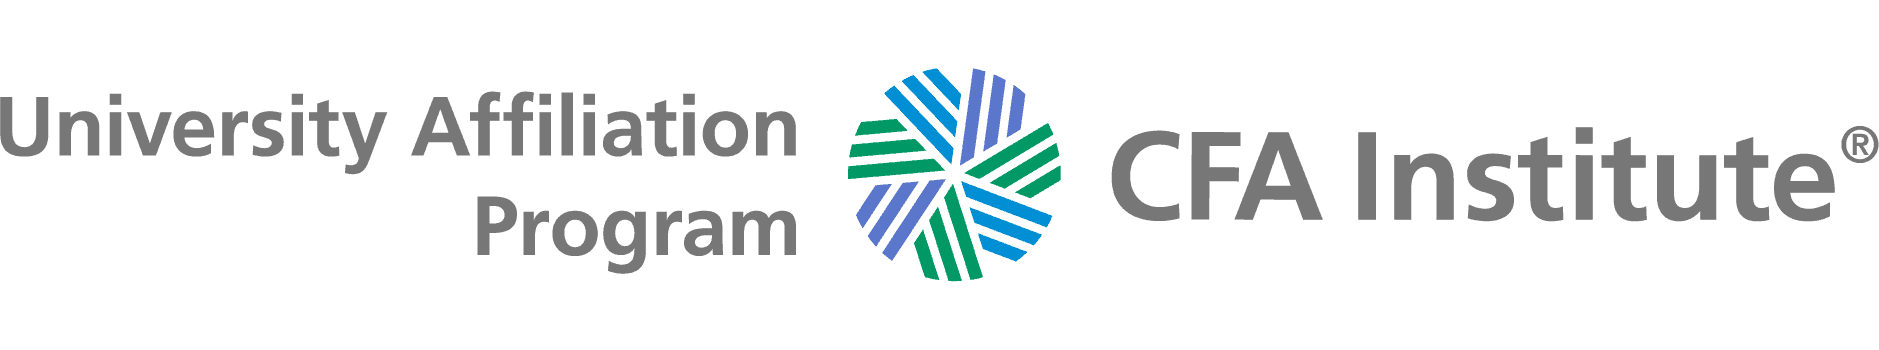 cfa-institute-logo